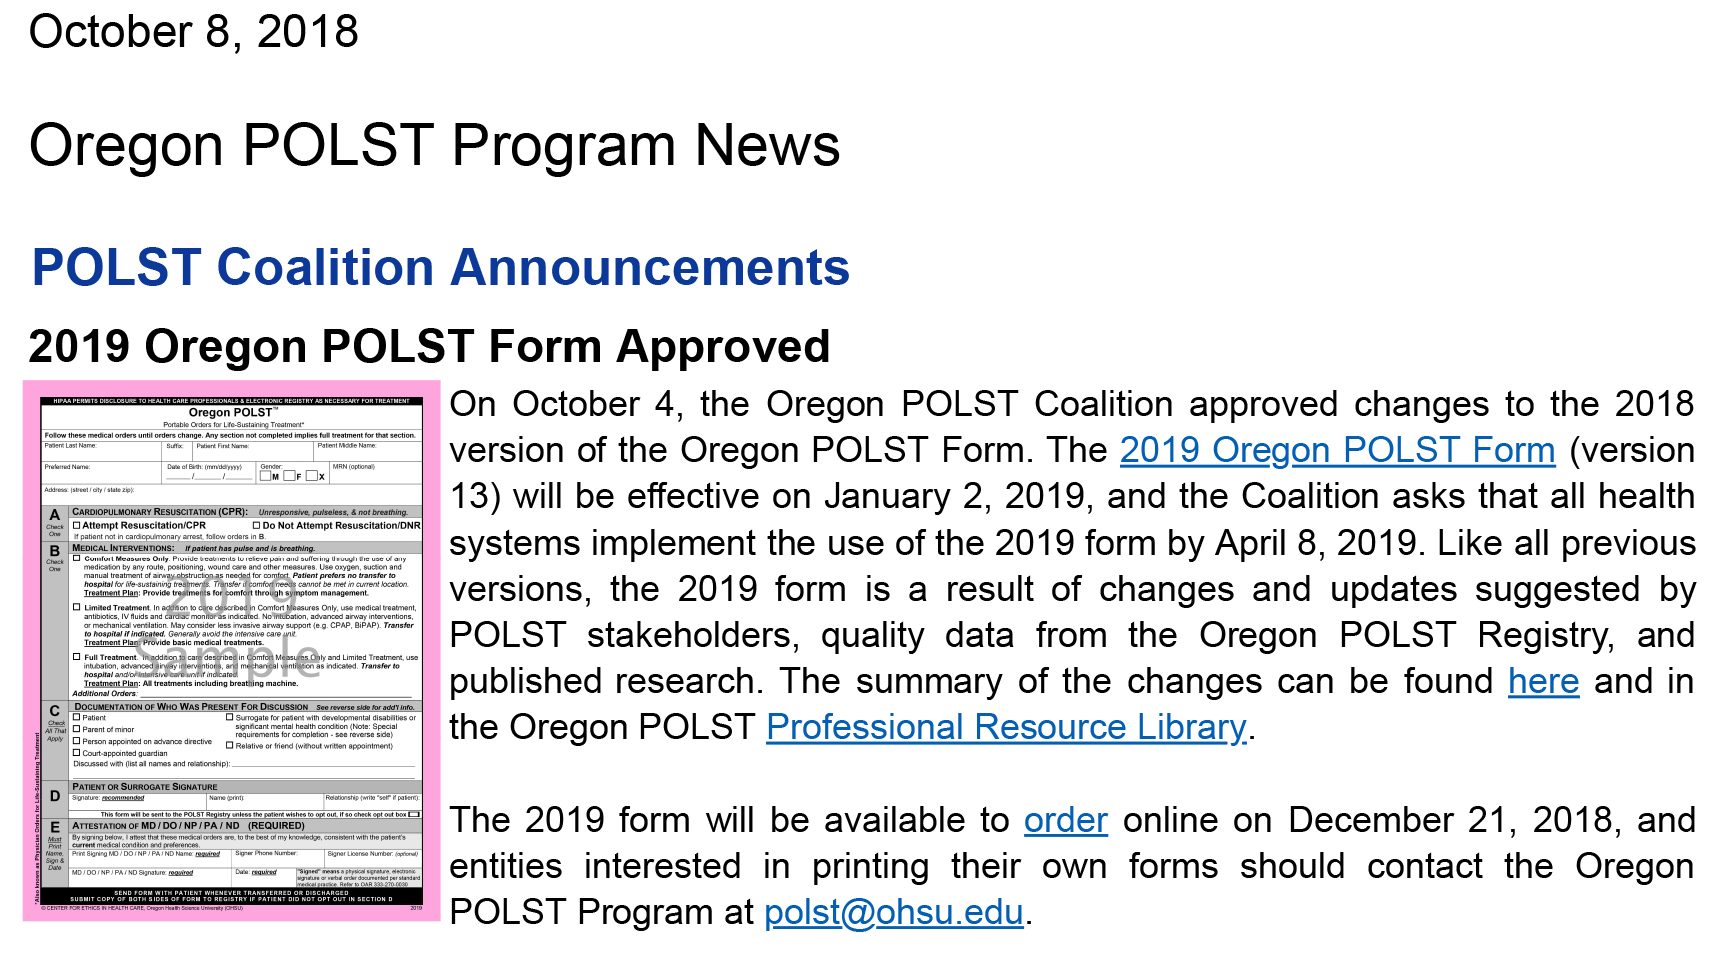 2018.10.08 Oregon POLST Program News Website Image.jpg